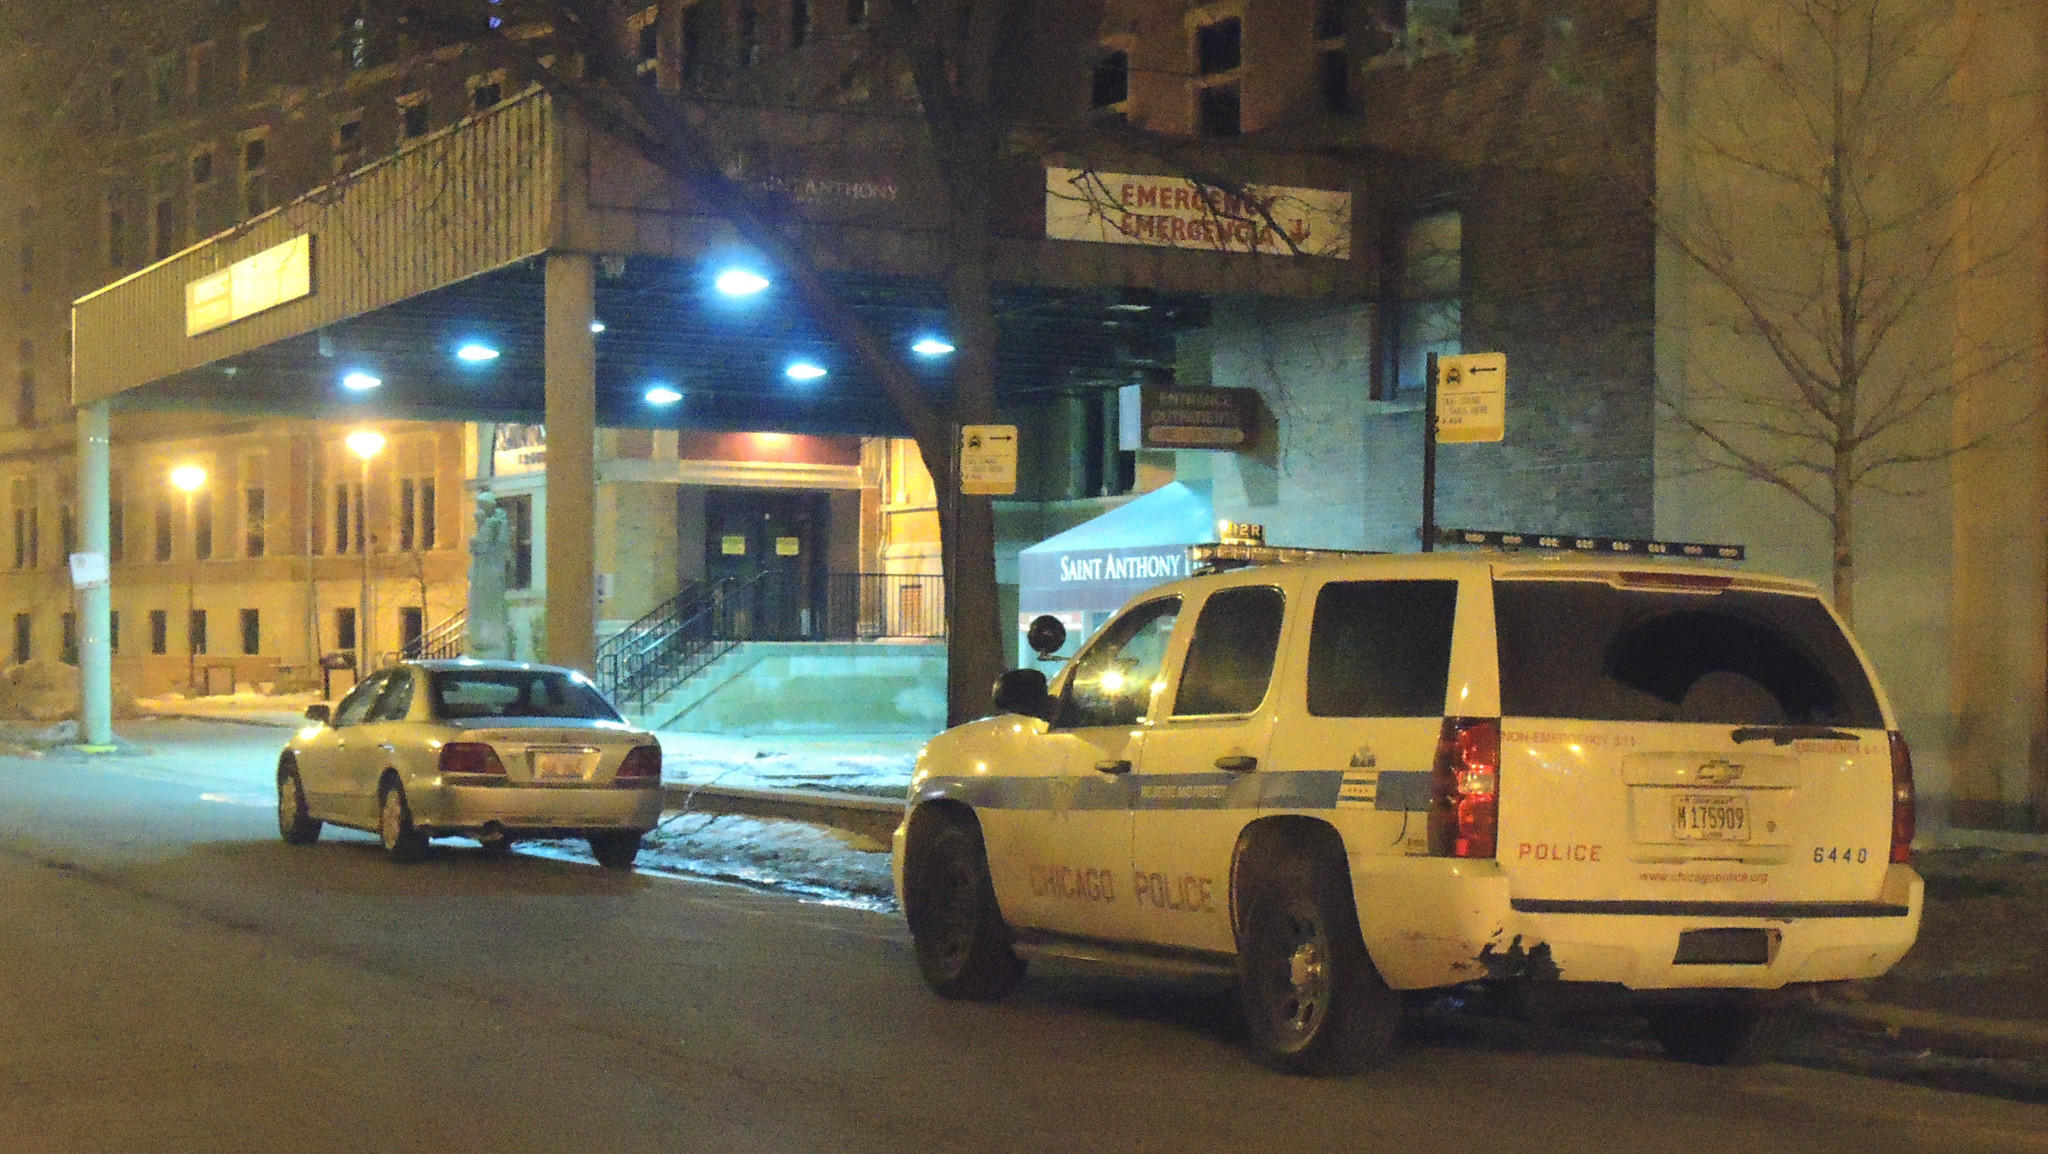 Police outside Saint Anthony Hospital, where a 16-year-old boy was brought after suffering a gunshot wound to his leg.